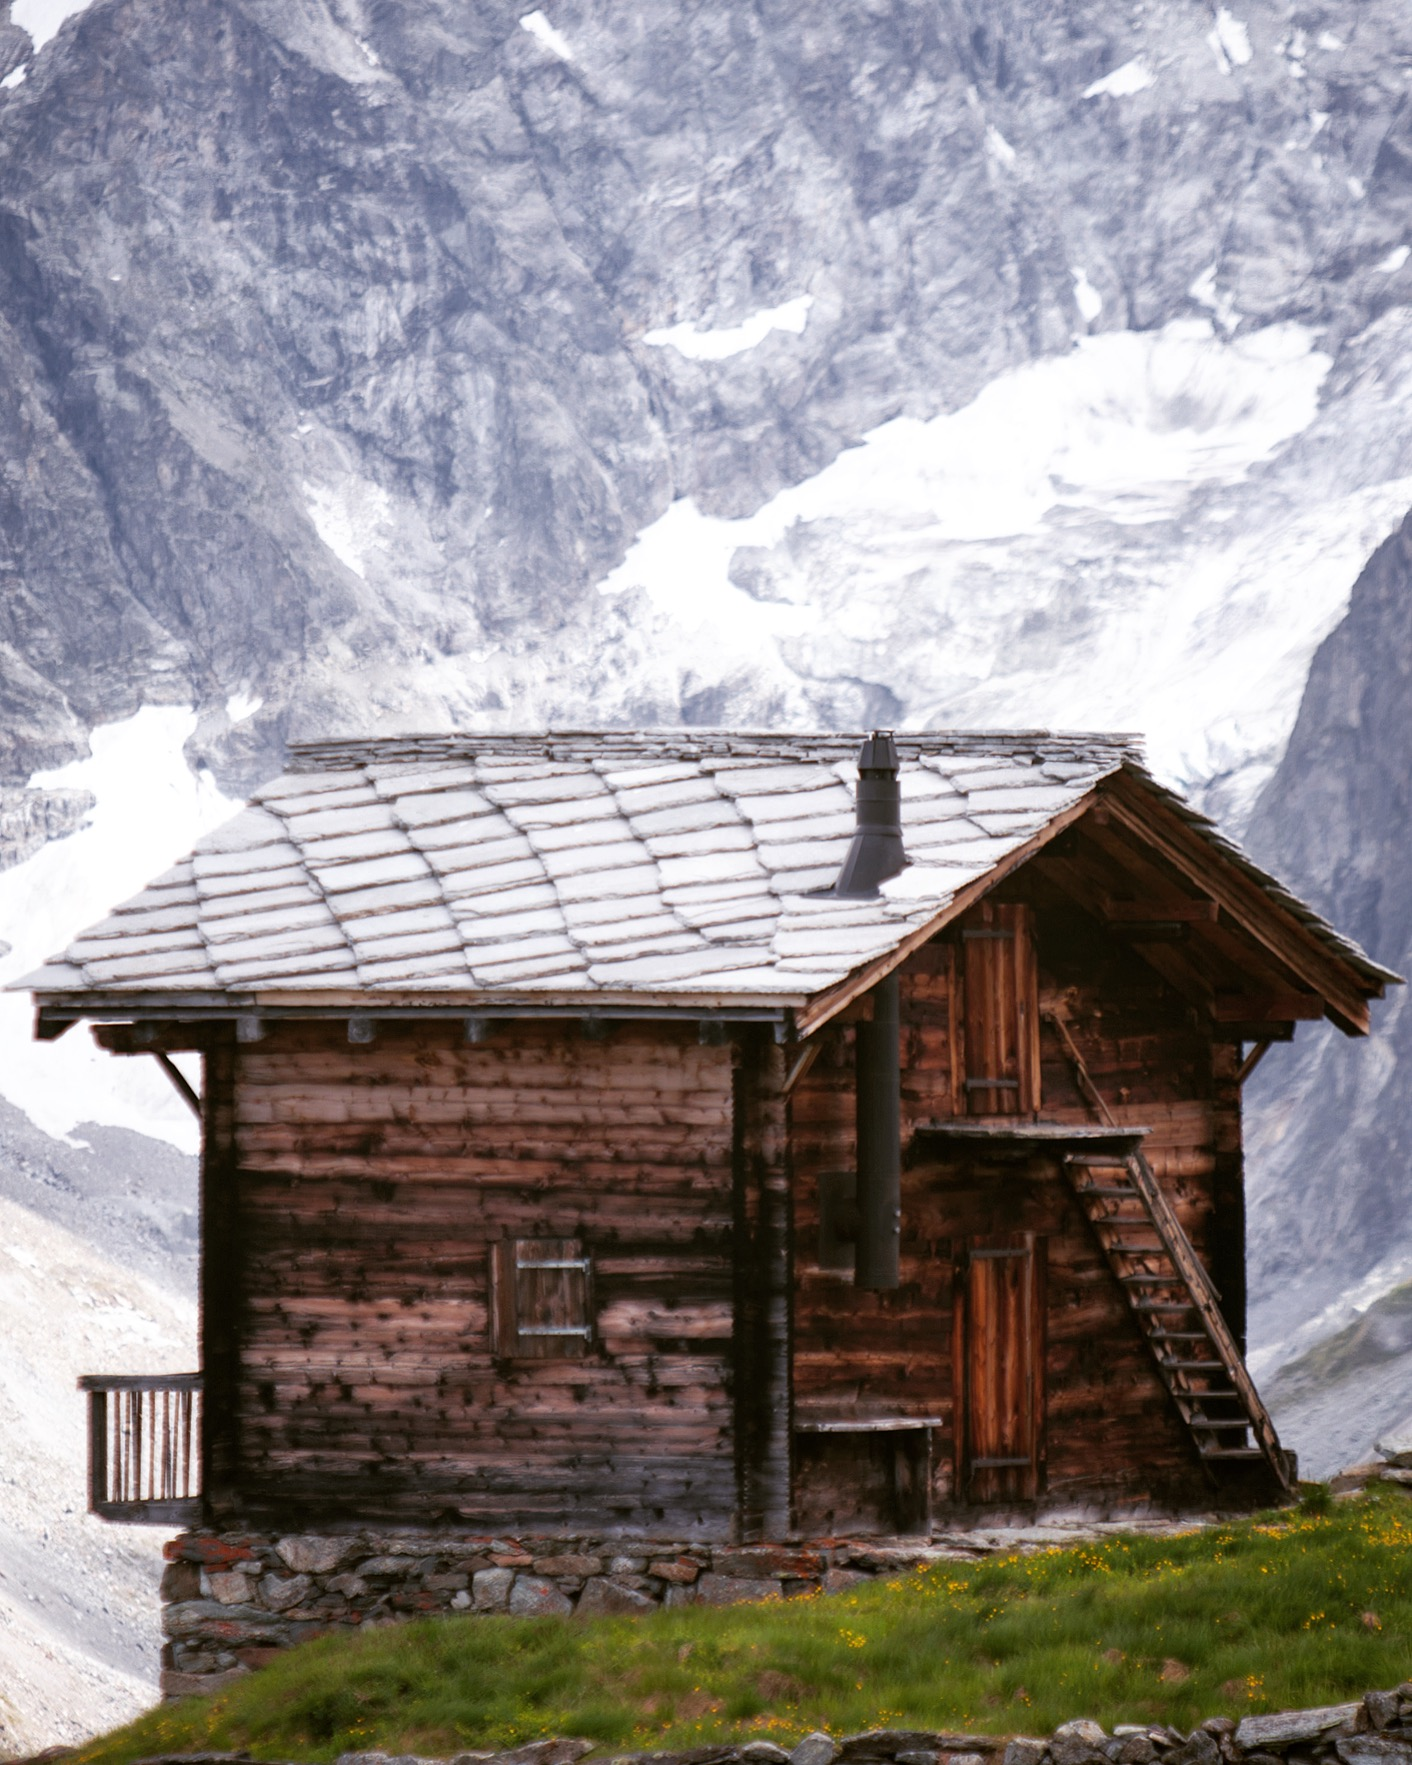 Day 6:   Arolla, Swiss   High in the Alps, shale roofed and logged walls, on the edge of a valley, in front of a snow capped mountain. You either yearn for this, or a lazy beach; the distinction—make or break.